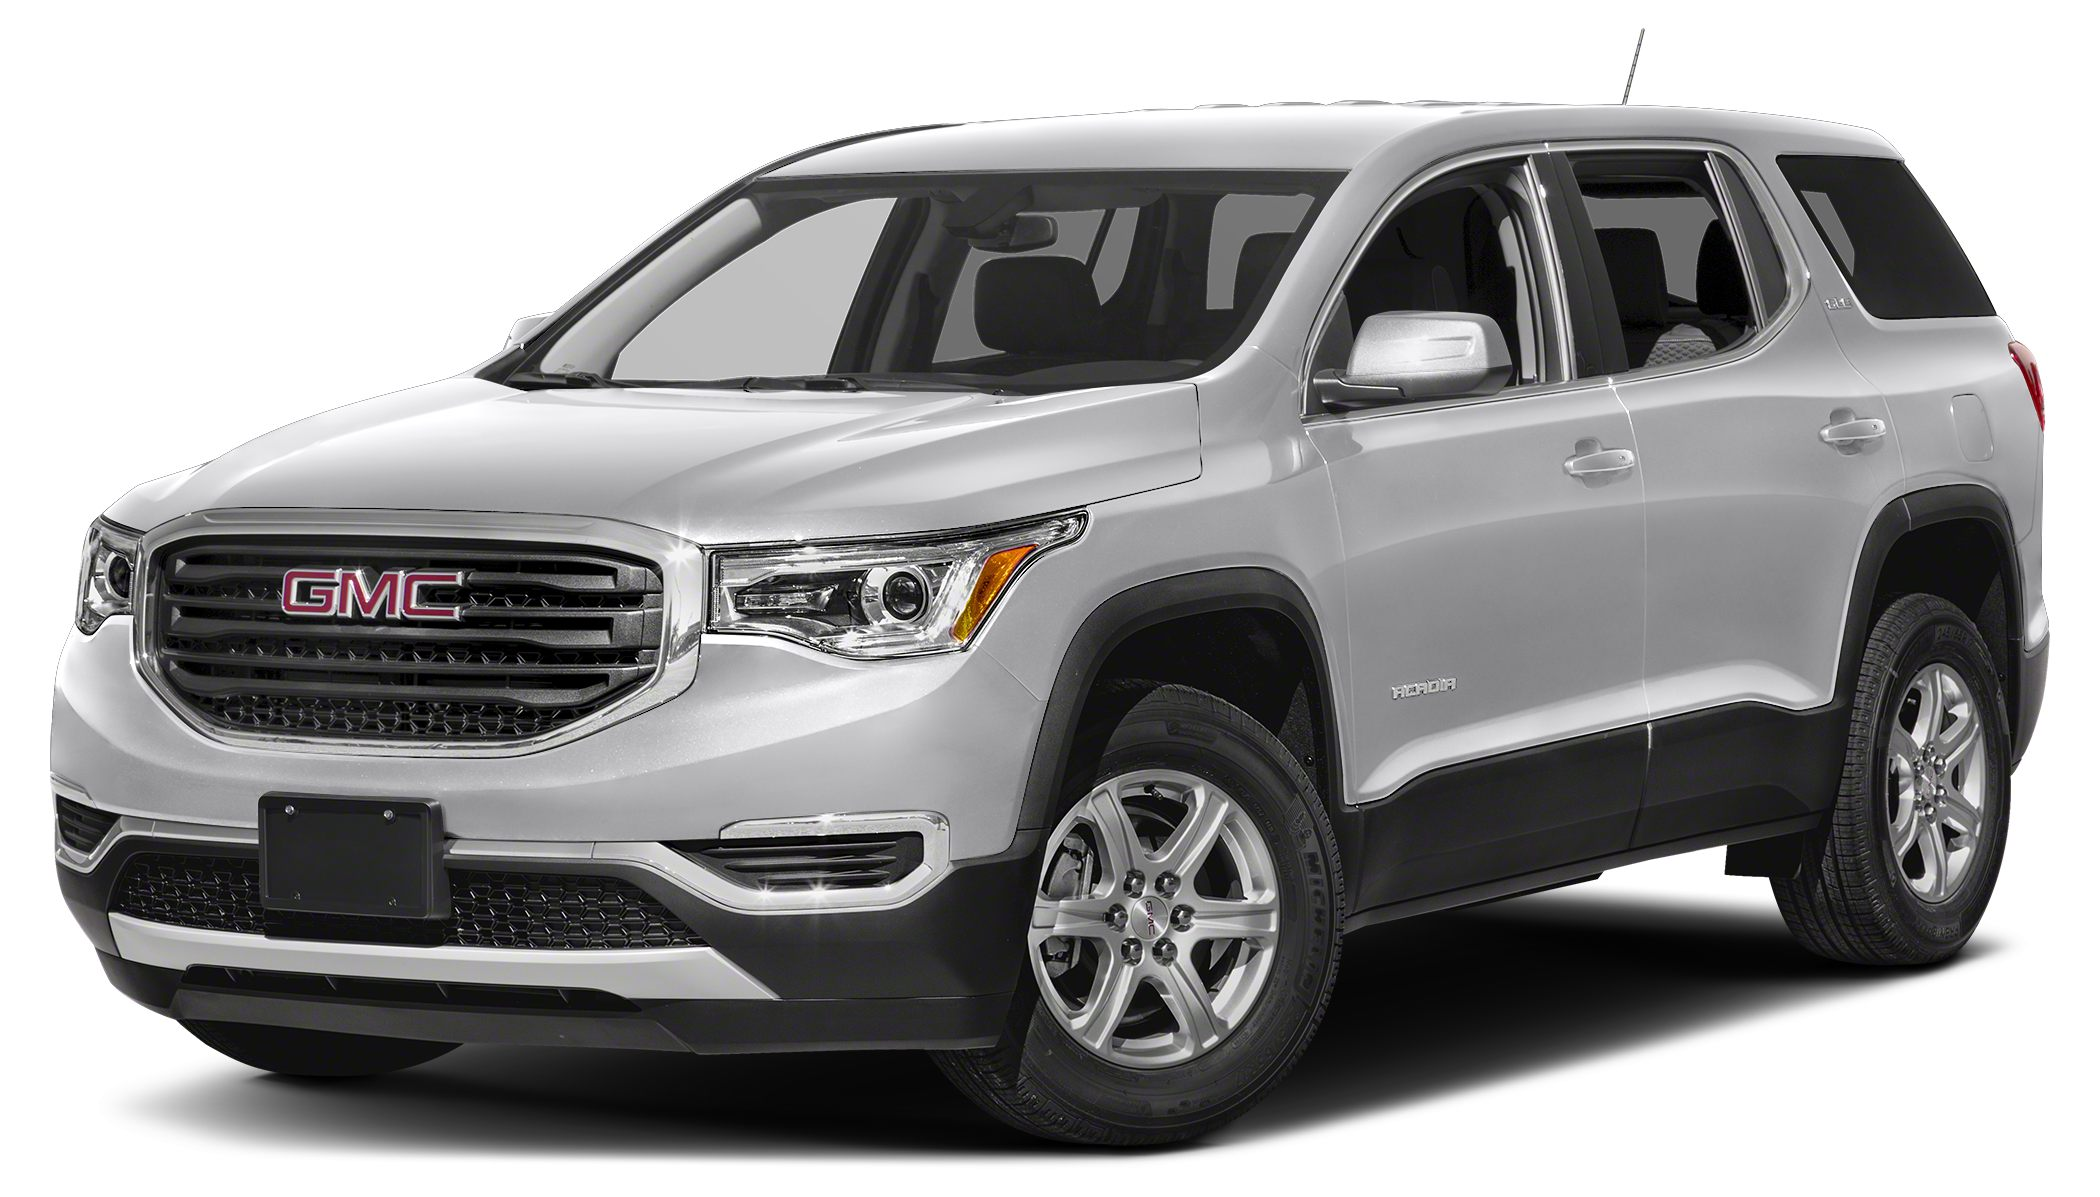 2017 GMC Acadia SLE-1 The all-new 2017 GMC Acadia mid-size SUV is designed to make a lasting impre